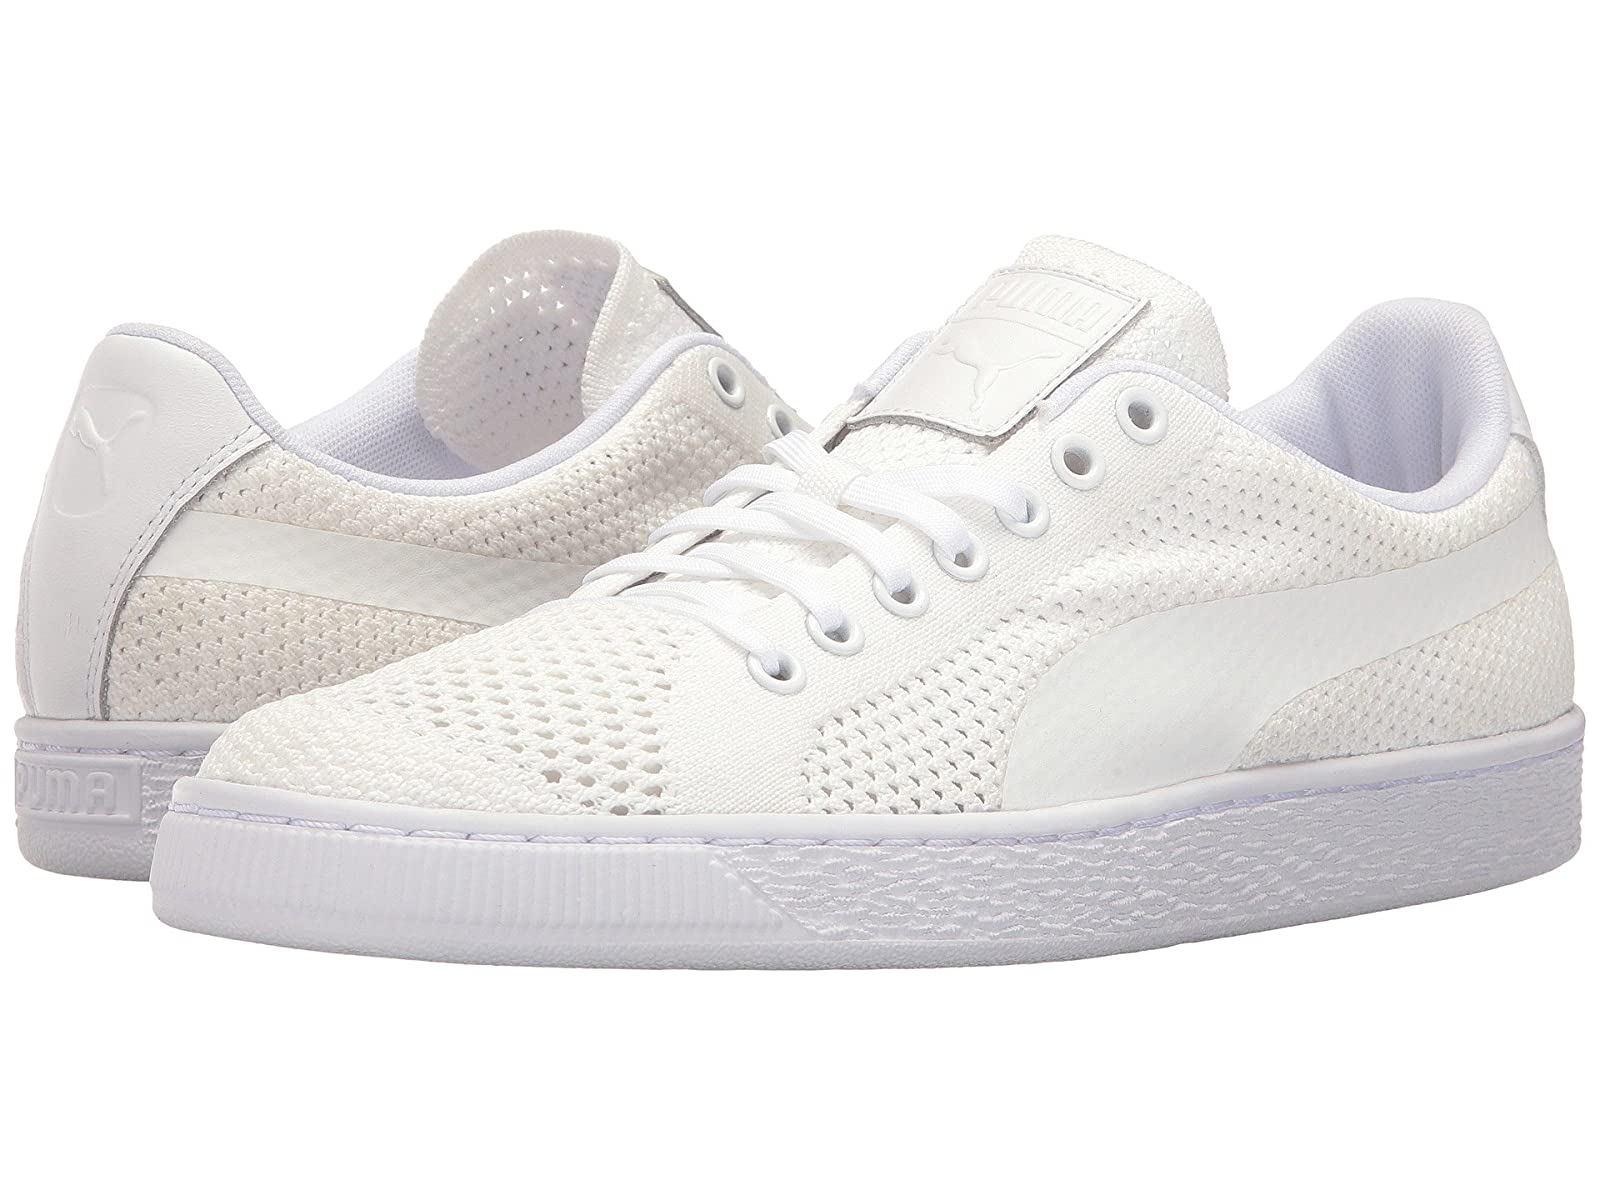 PUMA Basket Classic EvoknitCheap and distinctive eye-catching shoes